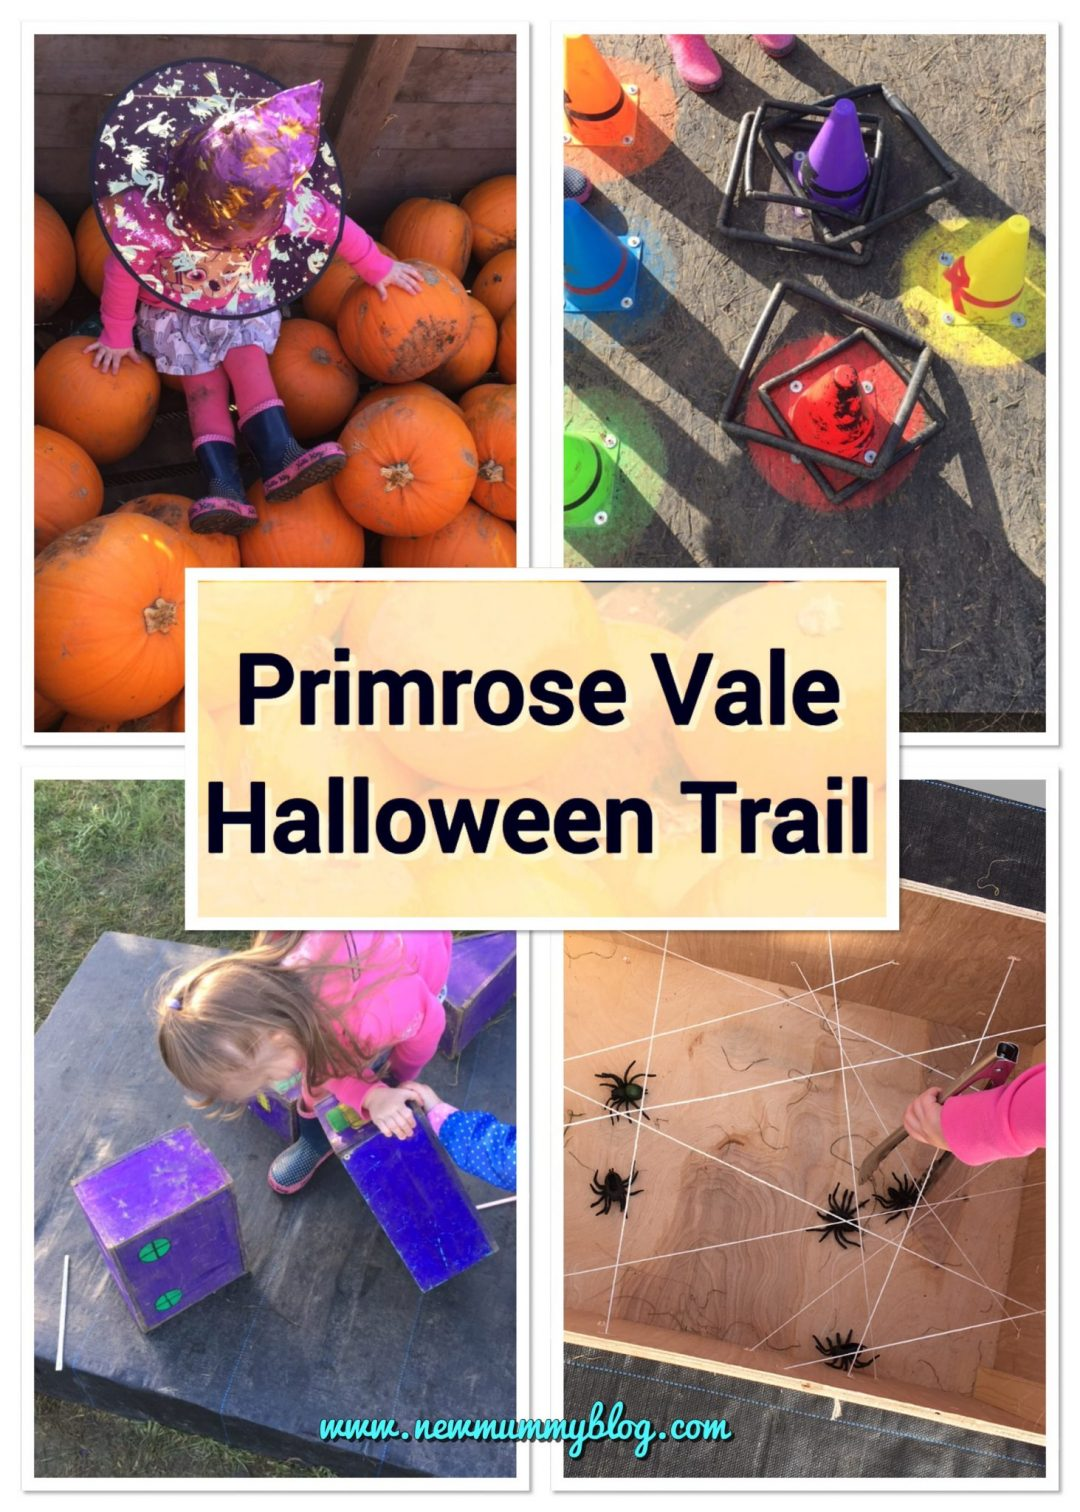 Primrose Vale Halloween Trail Cheltenham Days out and things to do Gloucestershire